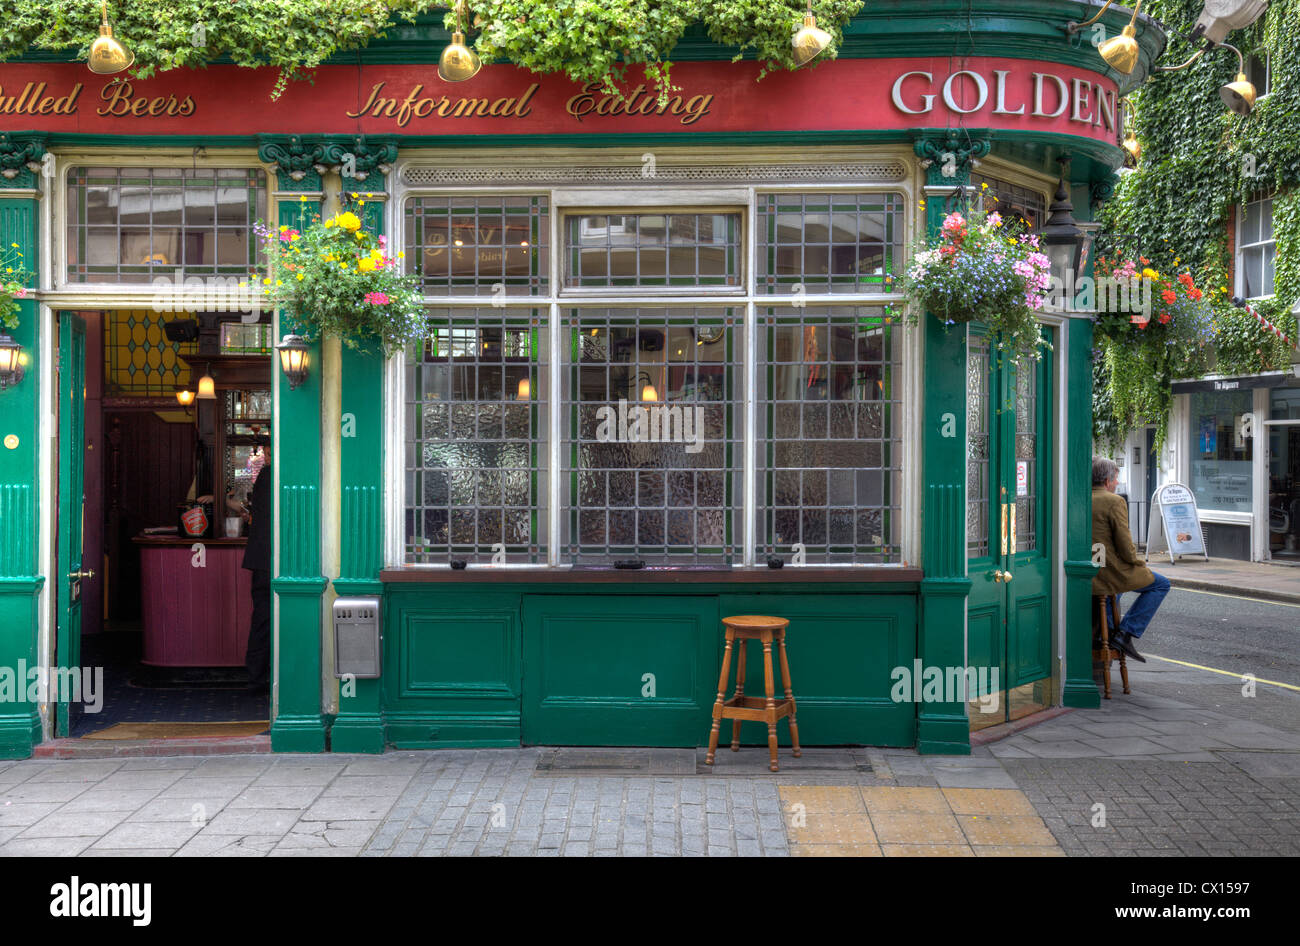 Typical London Pub, England. - Stock Image